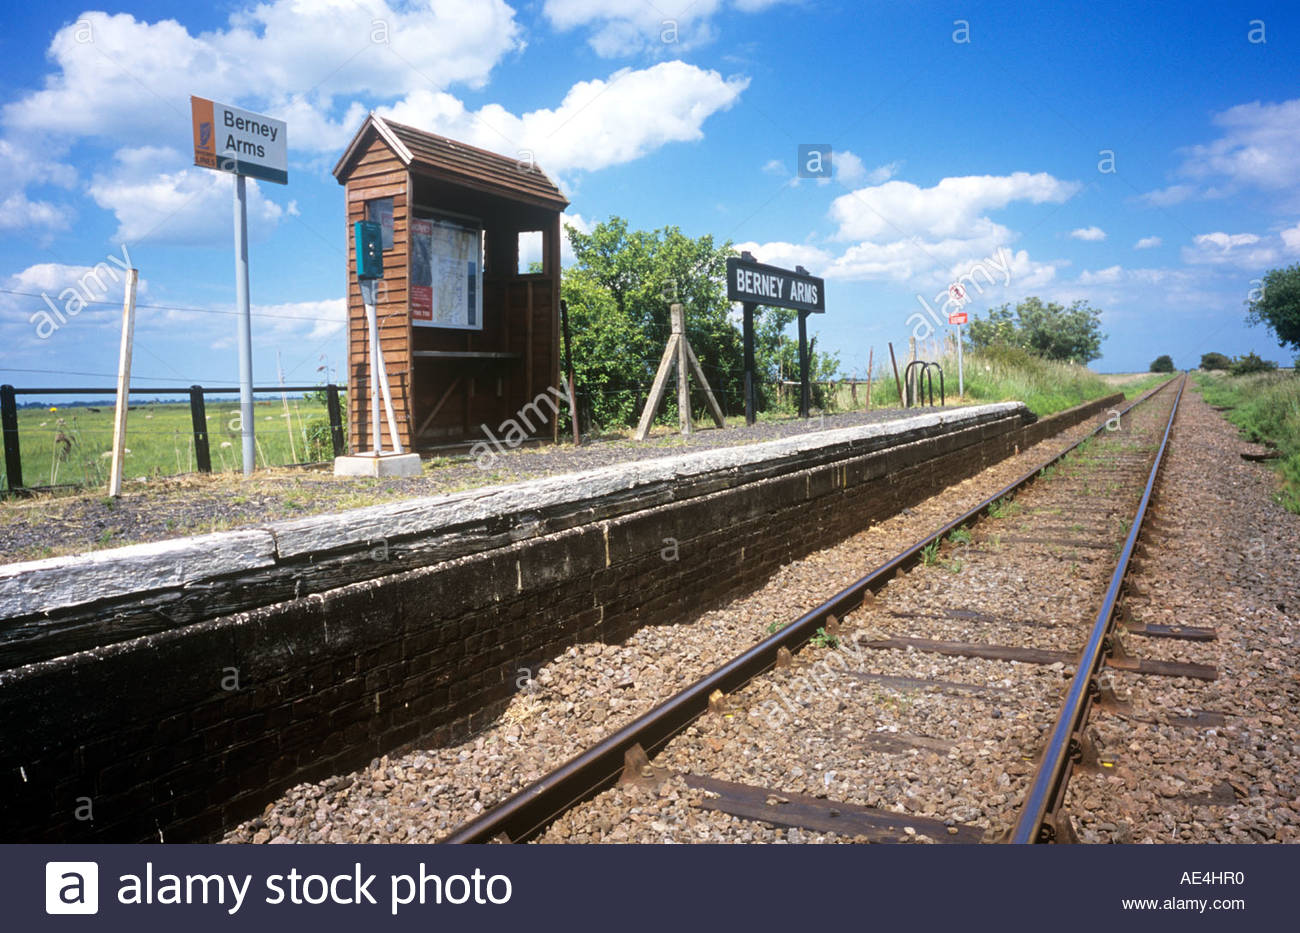 Berney Arms railway station in Norfolk, UK . June 2006 Stock Photo